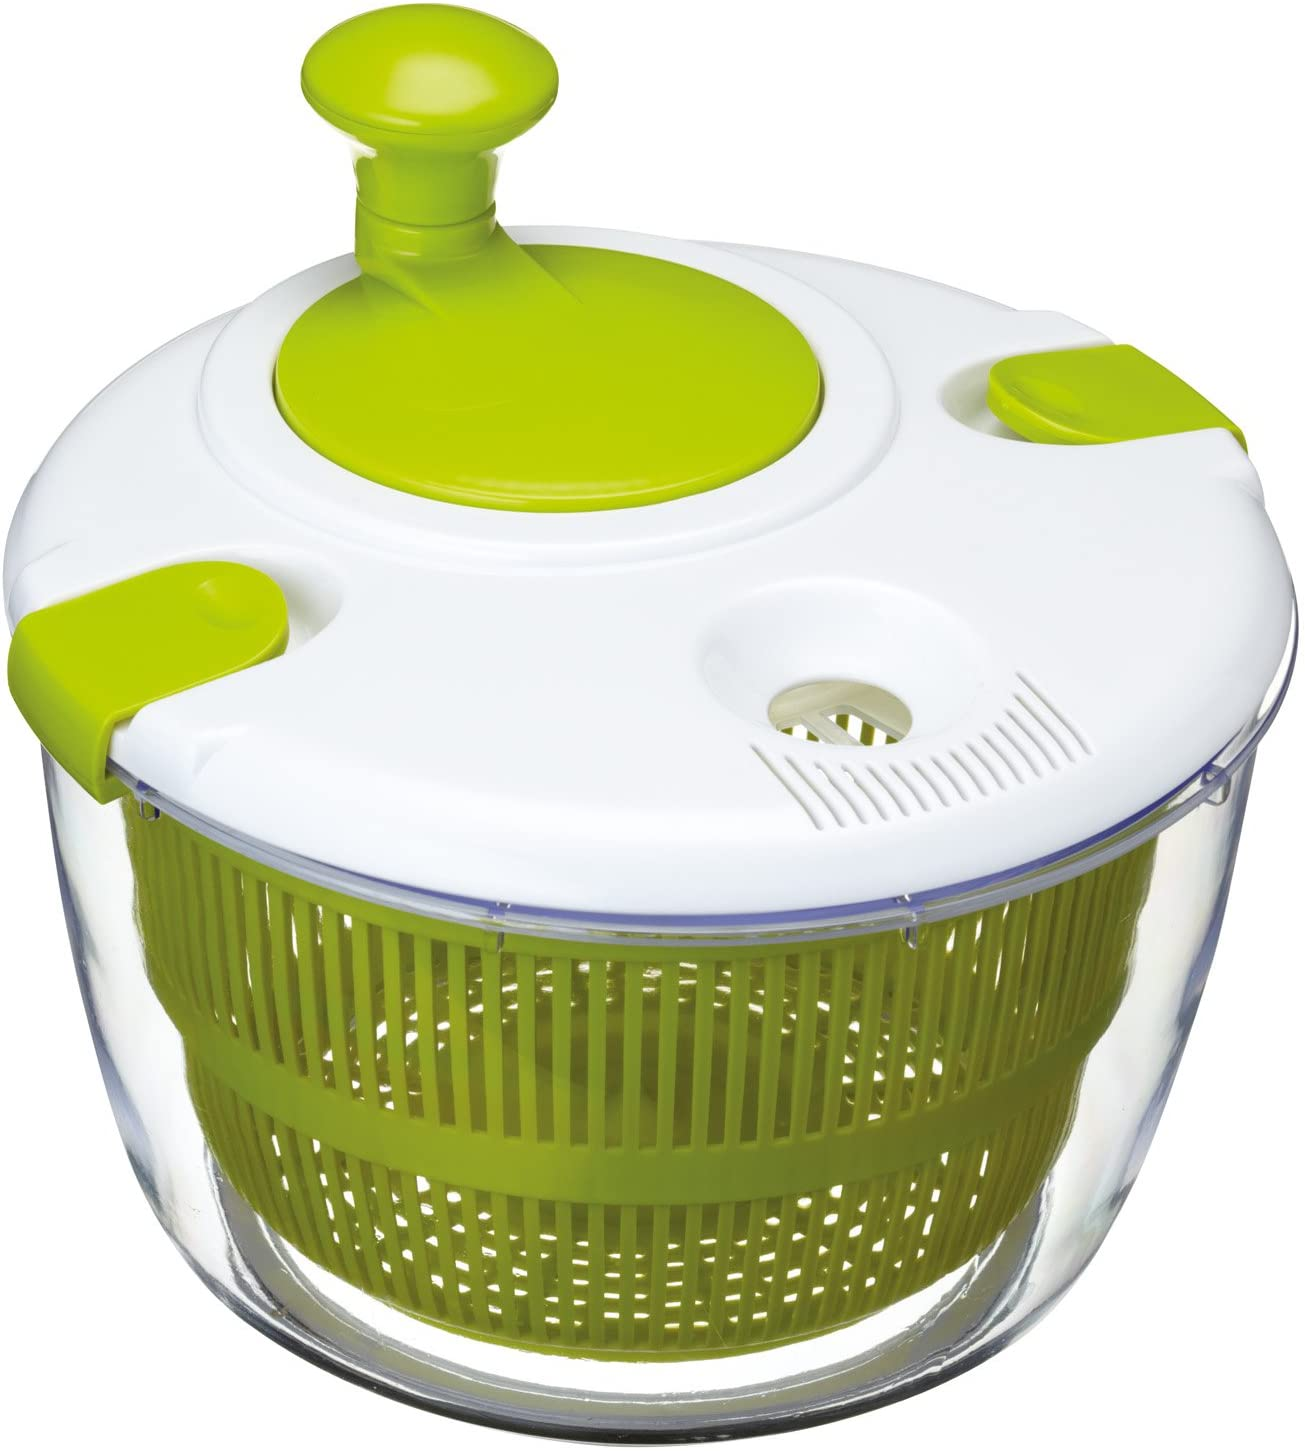 Kitchen Craft Deluxe Salad Spinner and Dresser overseas Gift in BPA Box Daily bargain sale